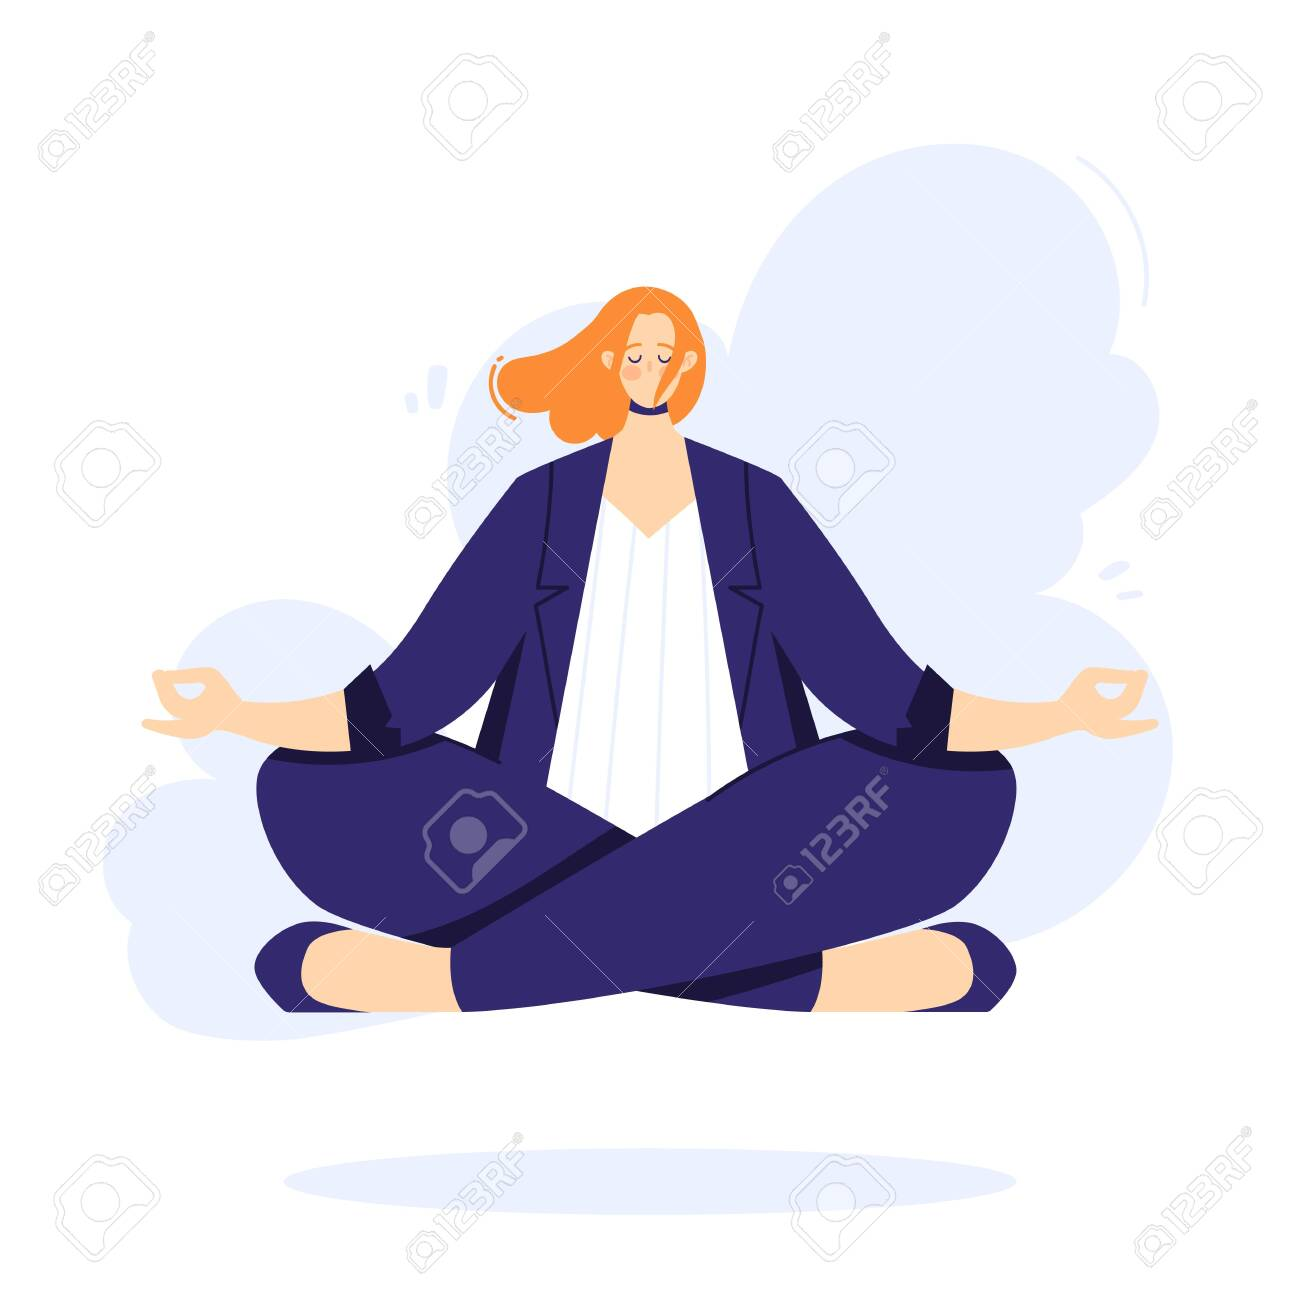 Businesswoman is doing yoga in the lotus pose to calm down after stressful day and hard work in office. Female character over floor. - 150146480